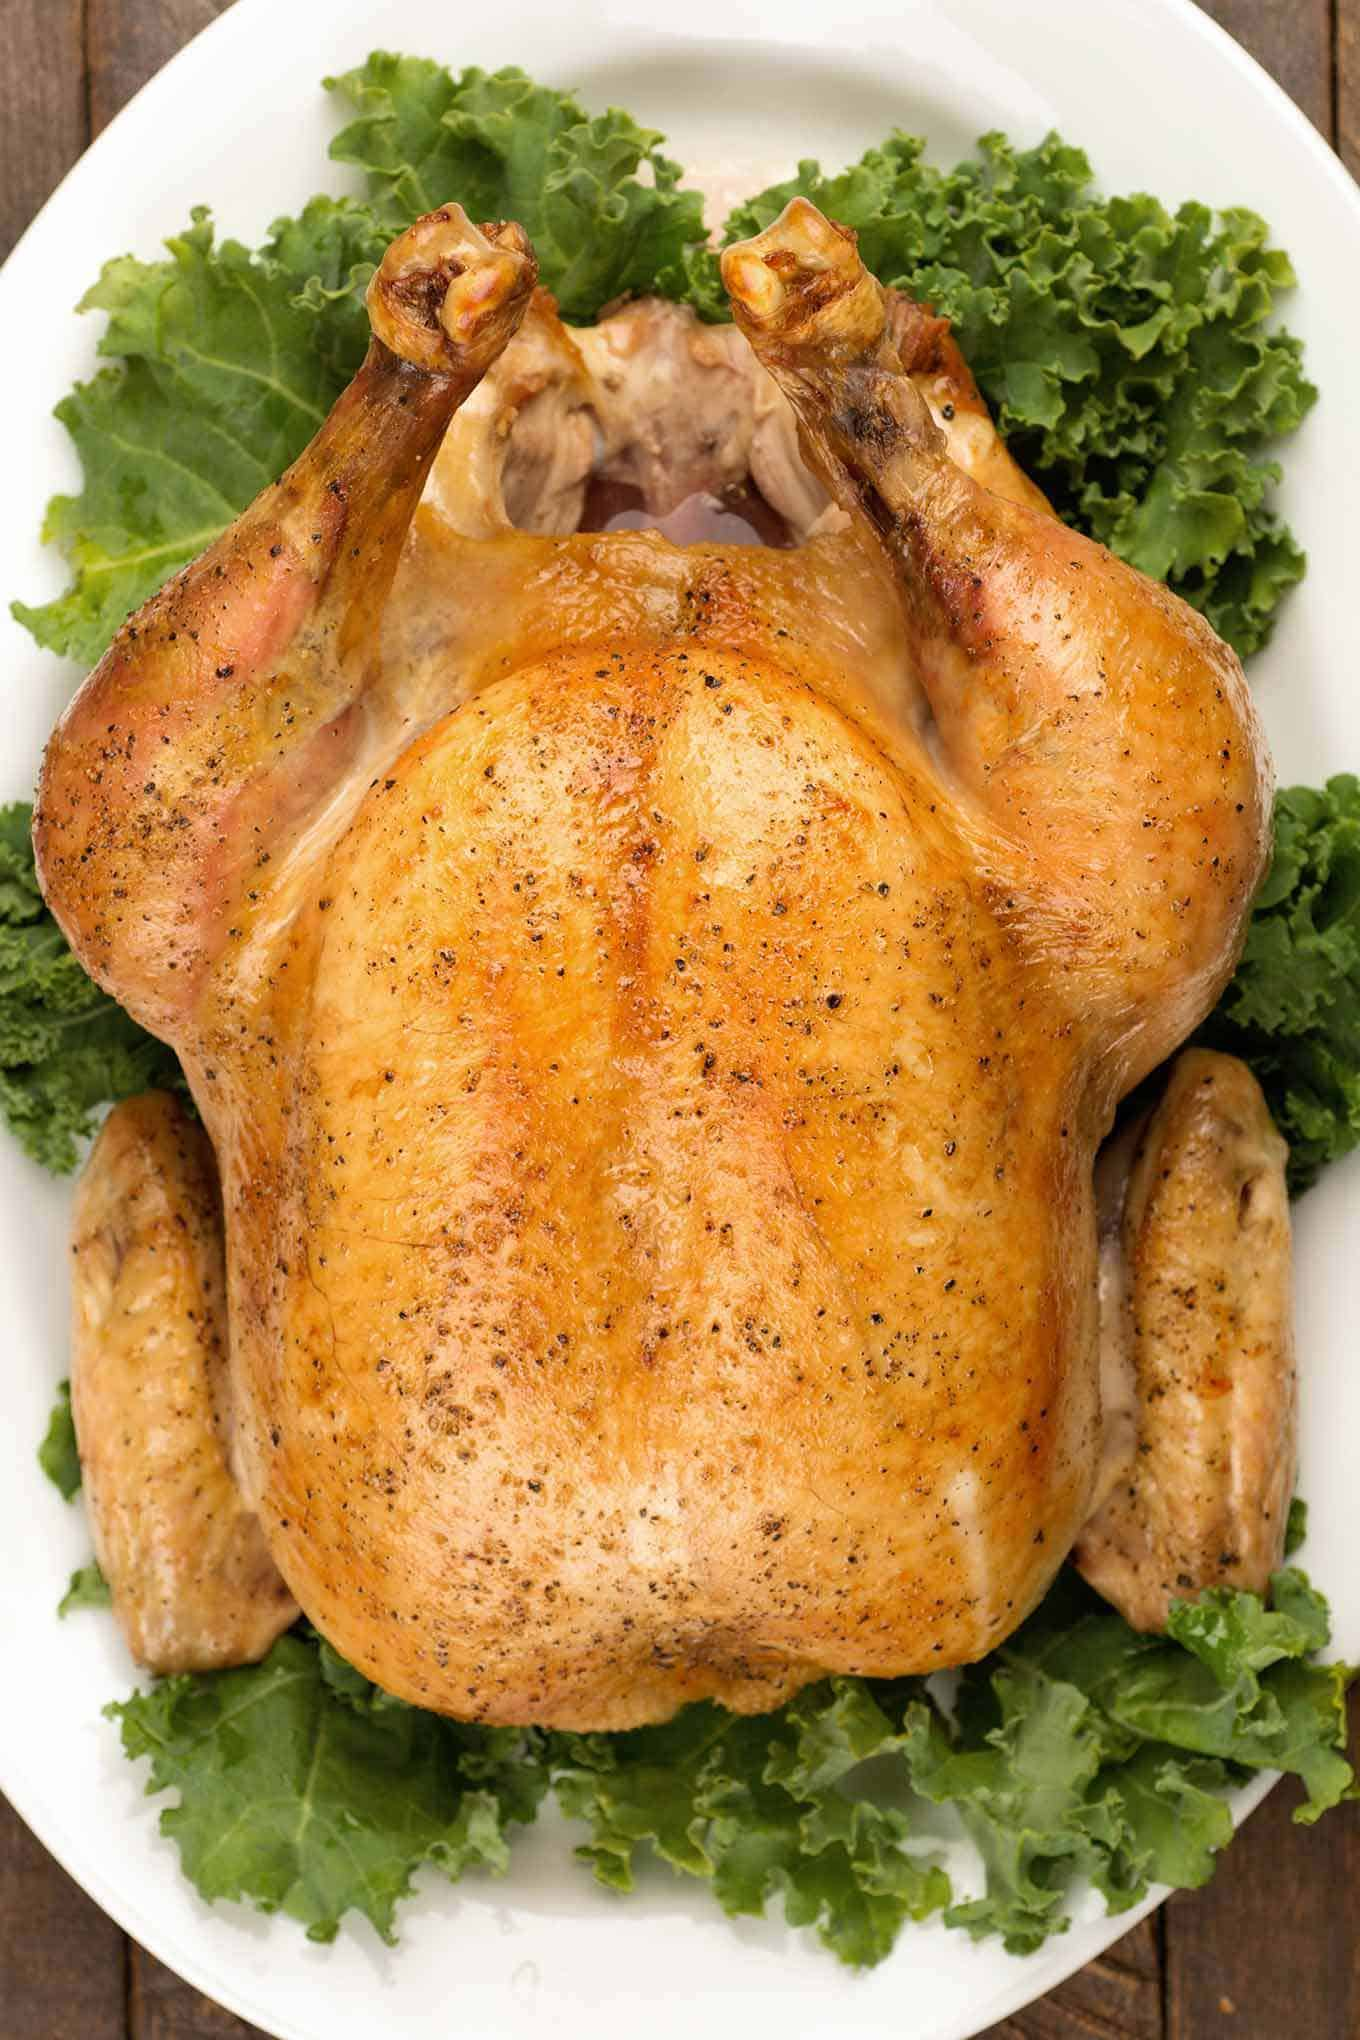 Perfectly browned roast capon on a serving platter garnished with raw kale.